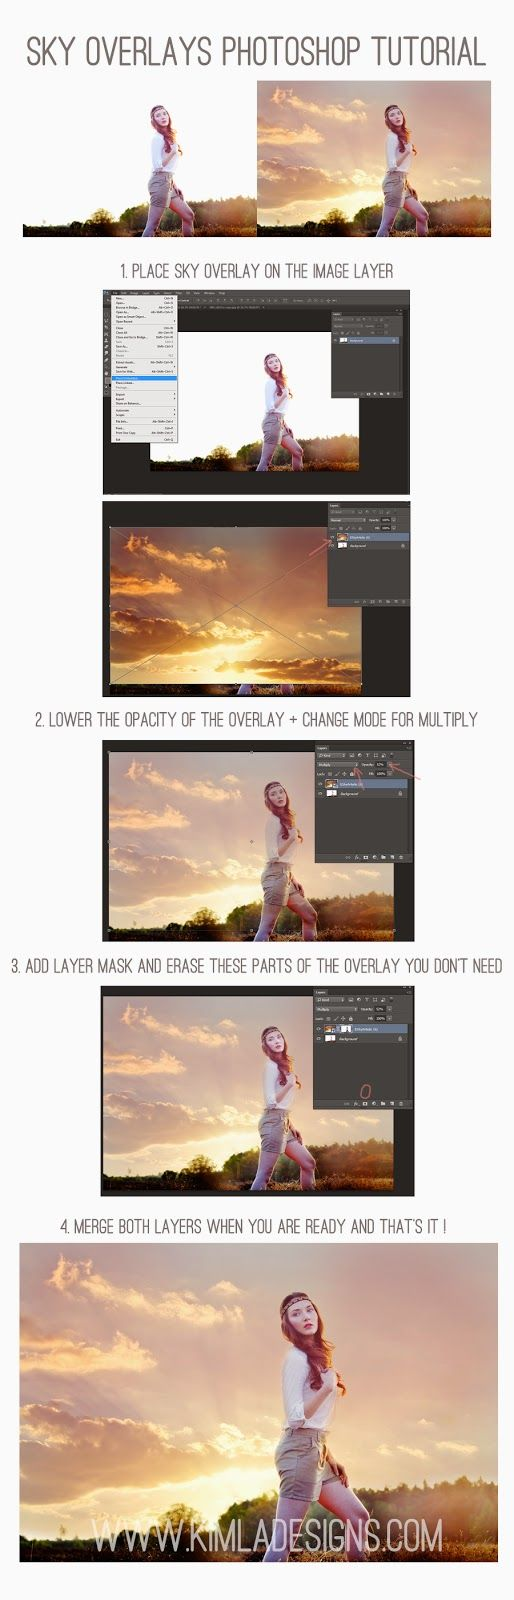 KIMLA DESIGNS BLOG: English Sky Overlays Photoshop Tutorial